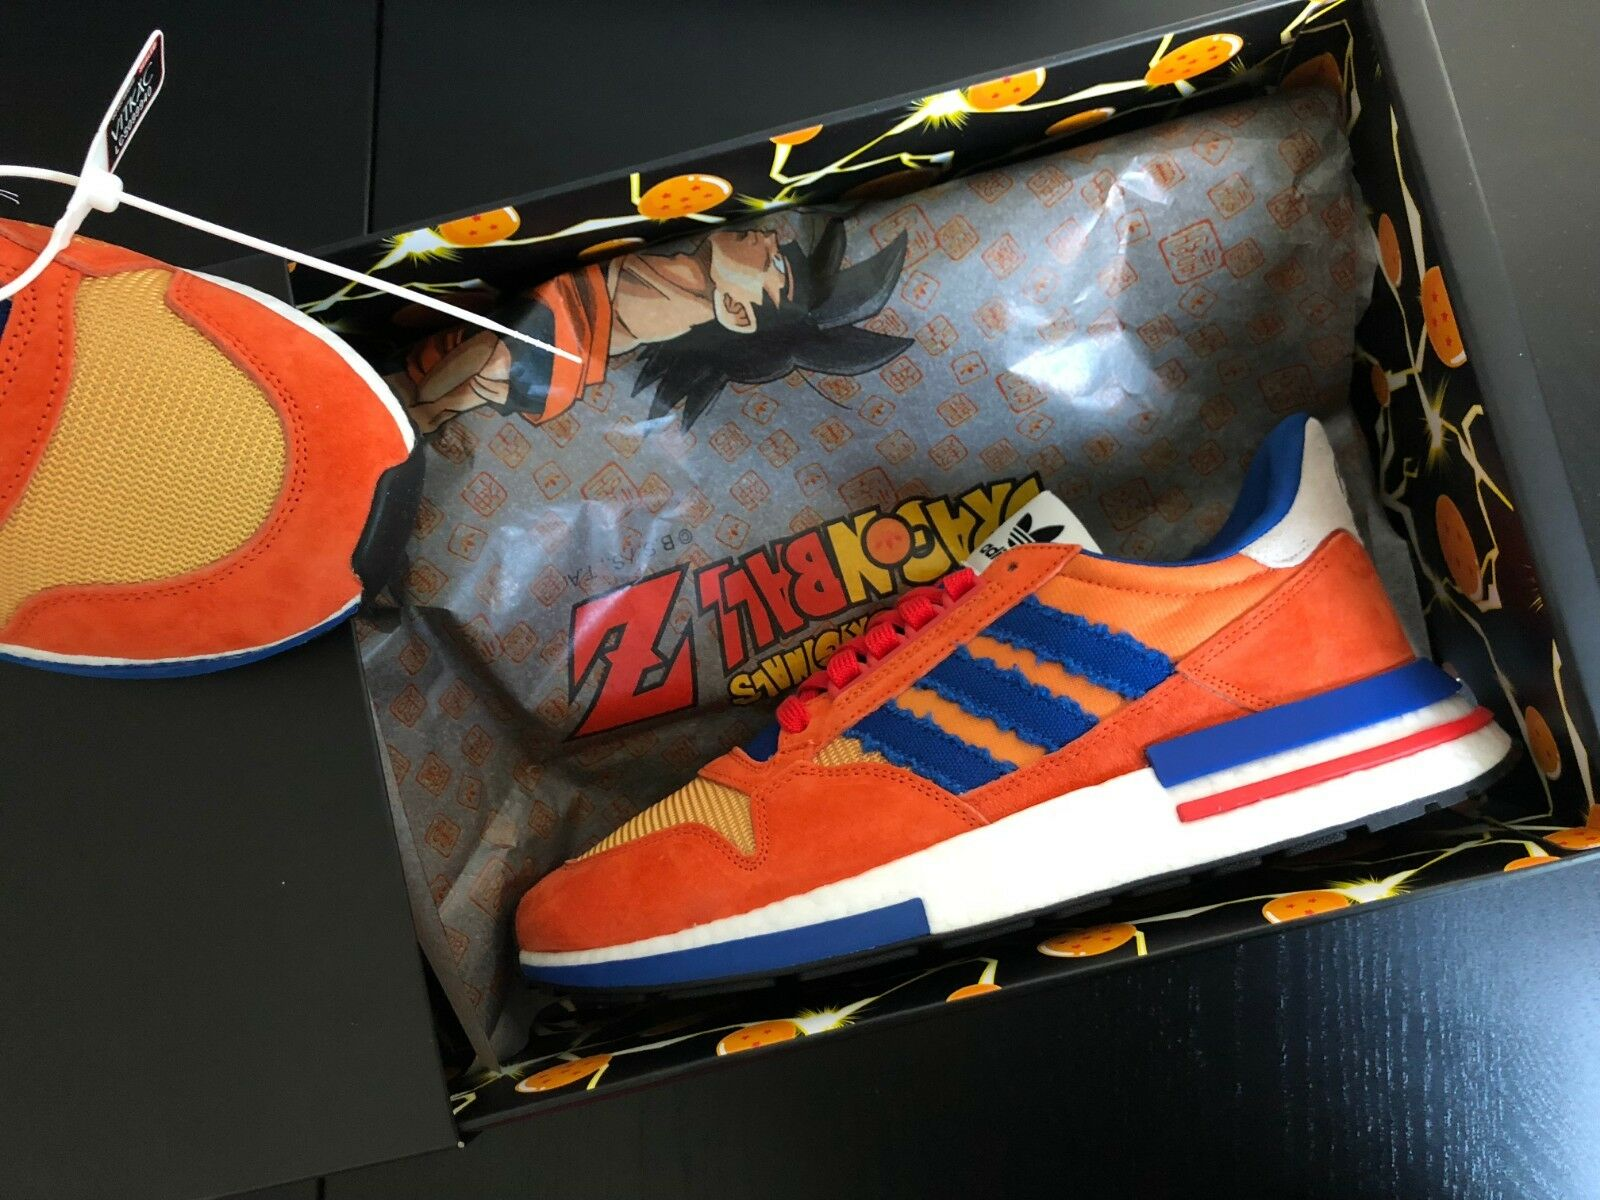 Adidas X Dragon Ball ZX 500 RM Son Goku MULTIPLE SIZES US 8.5 10 10.5 11